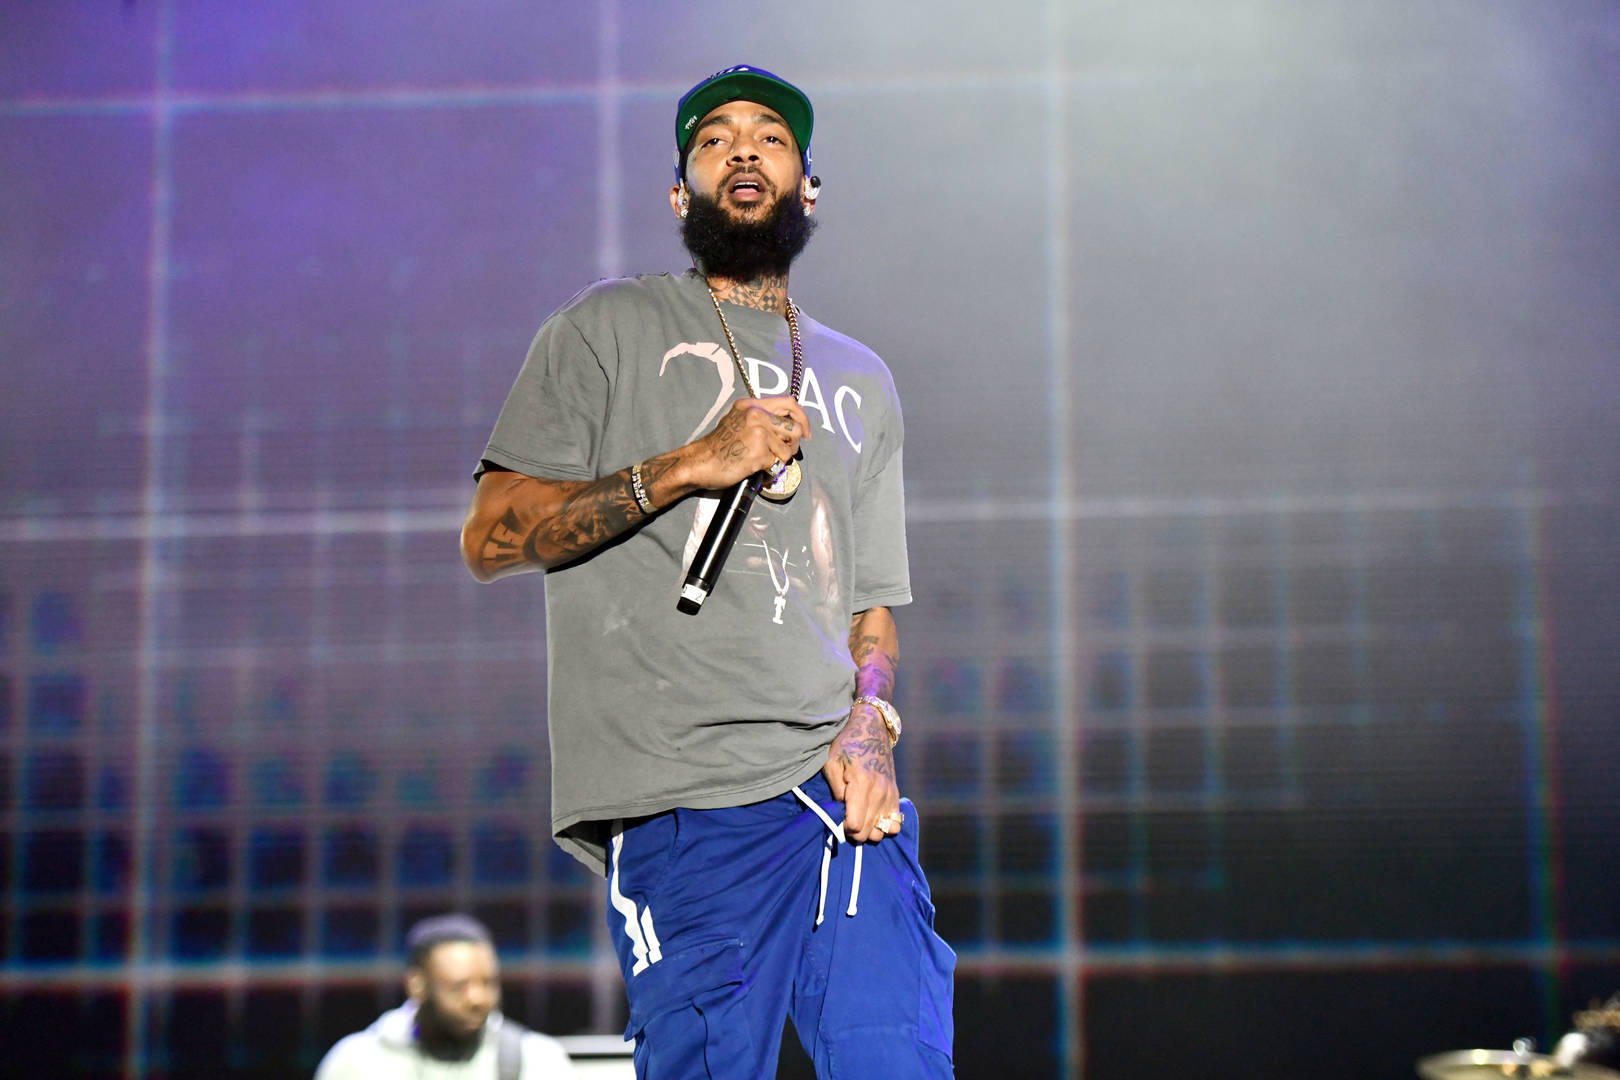 Nipsey Hussle's memorial service will take place at the Staples Center